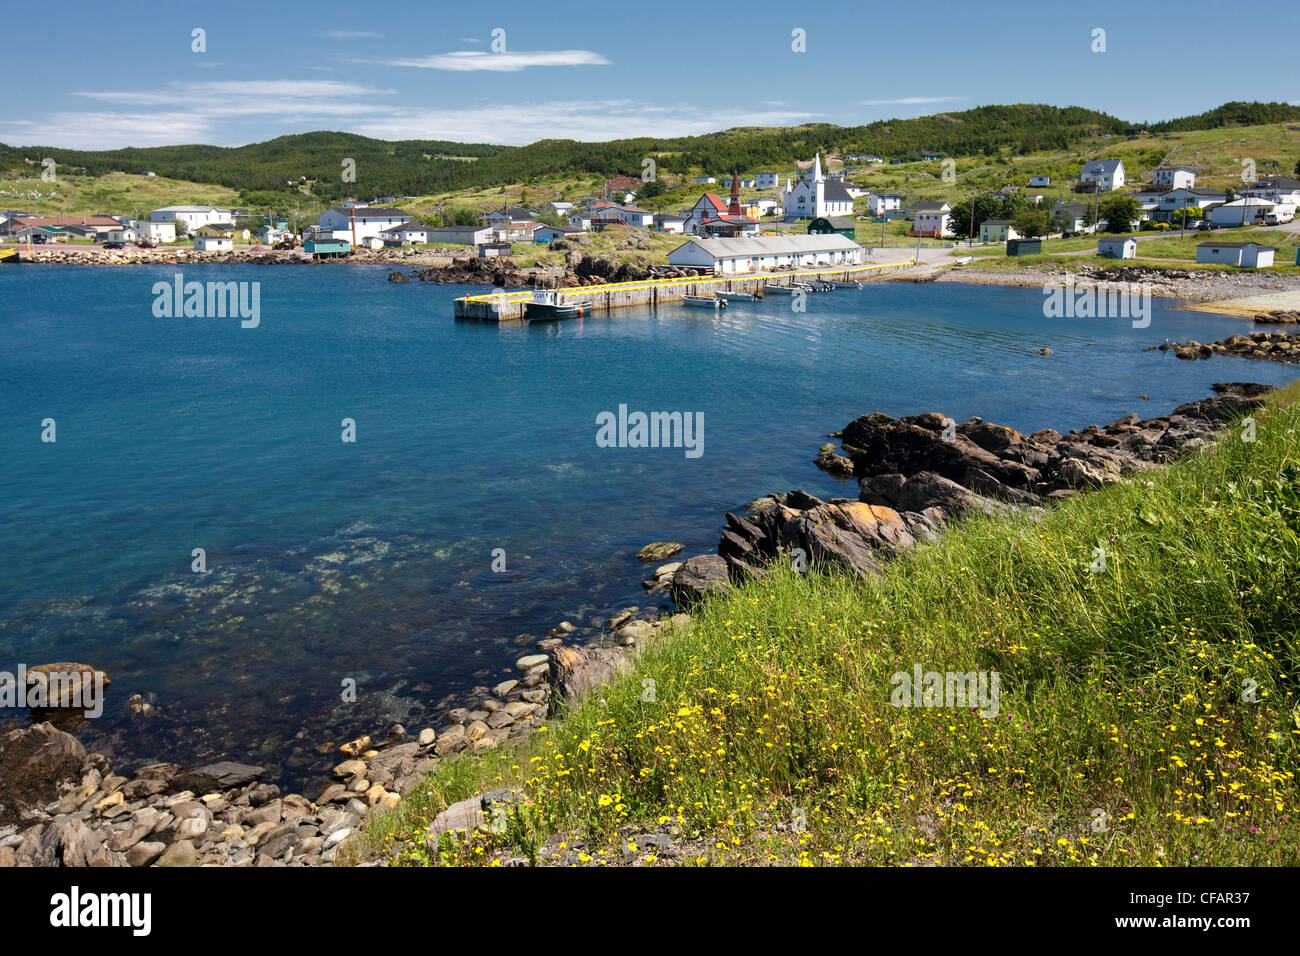 Fishing boats tied up at the wharf in Winterton, Newfoundland and Labrador, Canada. - Stock Image